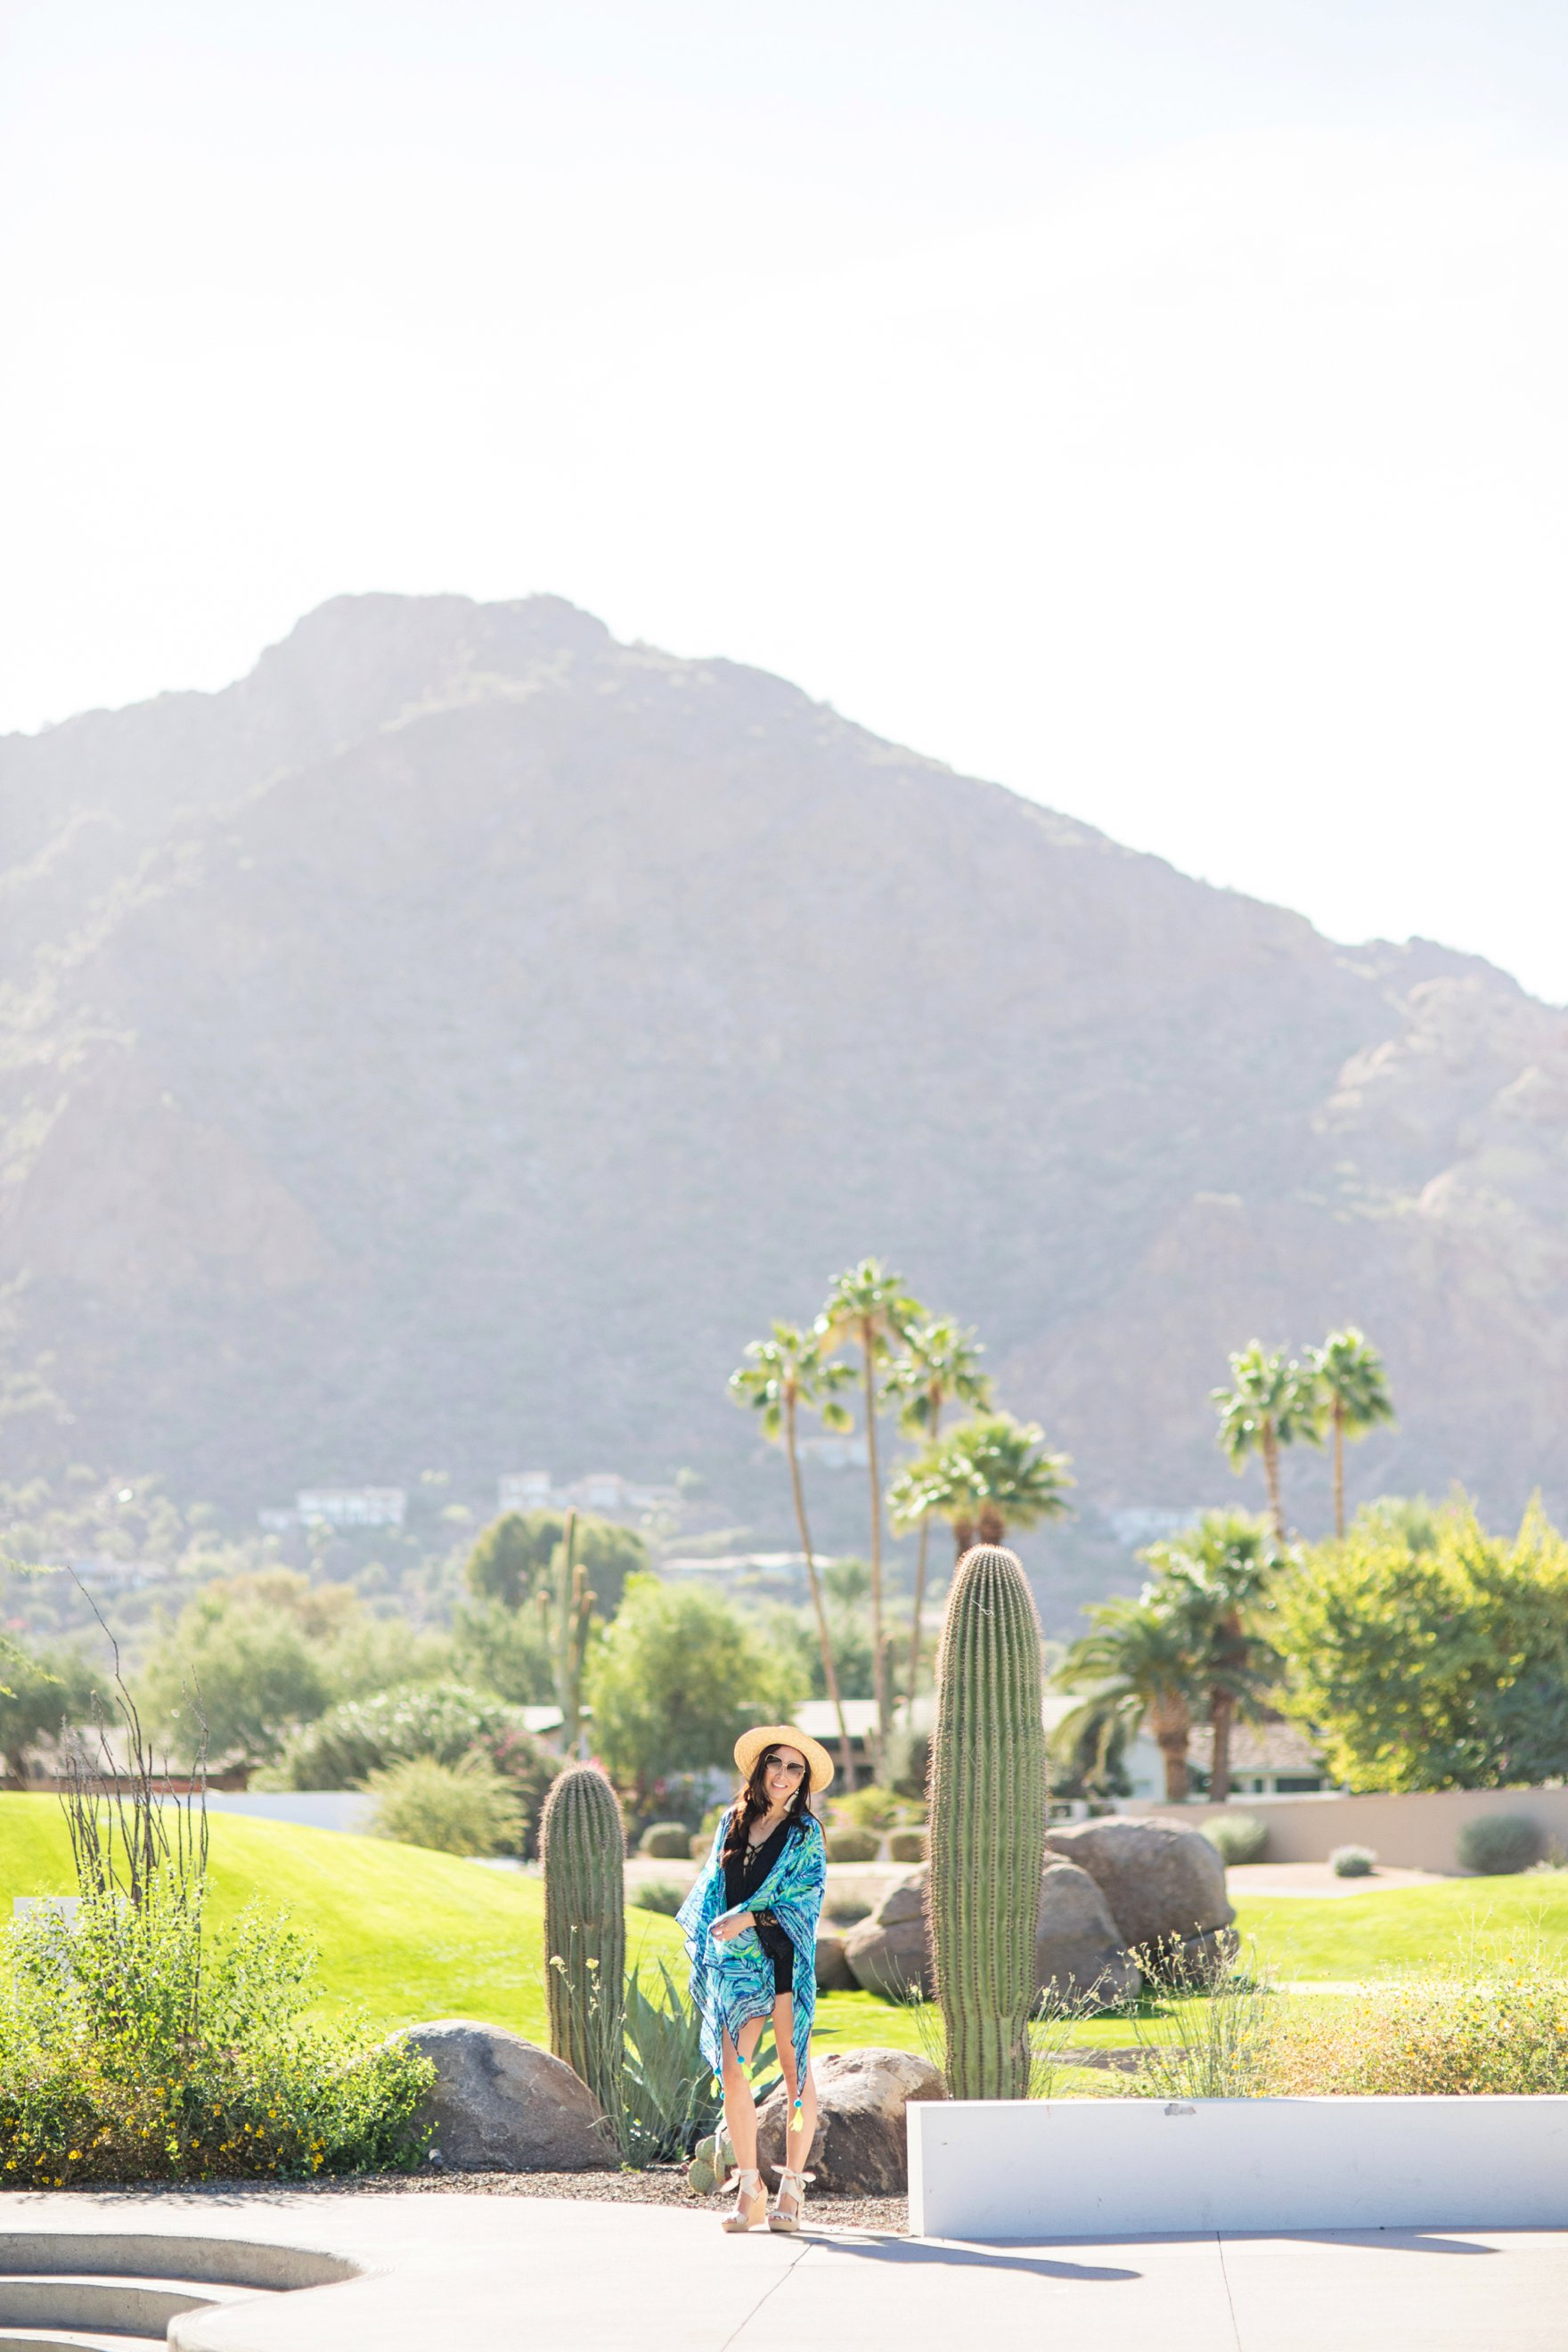 12 reasons I love phoenix - the great reasons to visit Phoenix Arizona // ANYA KIMONO Lilly Pulitzer resort style tassel earrings on Diana Elizabeth